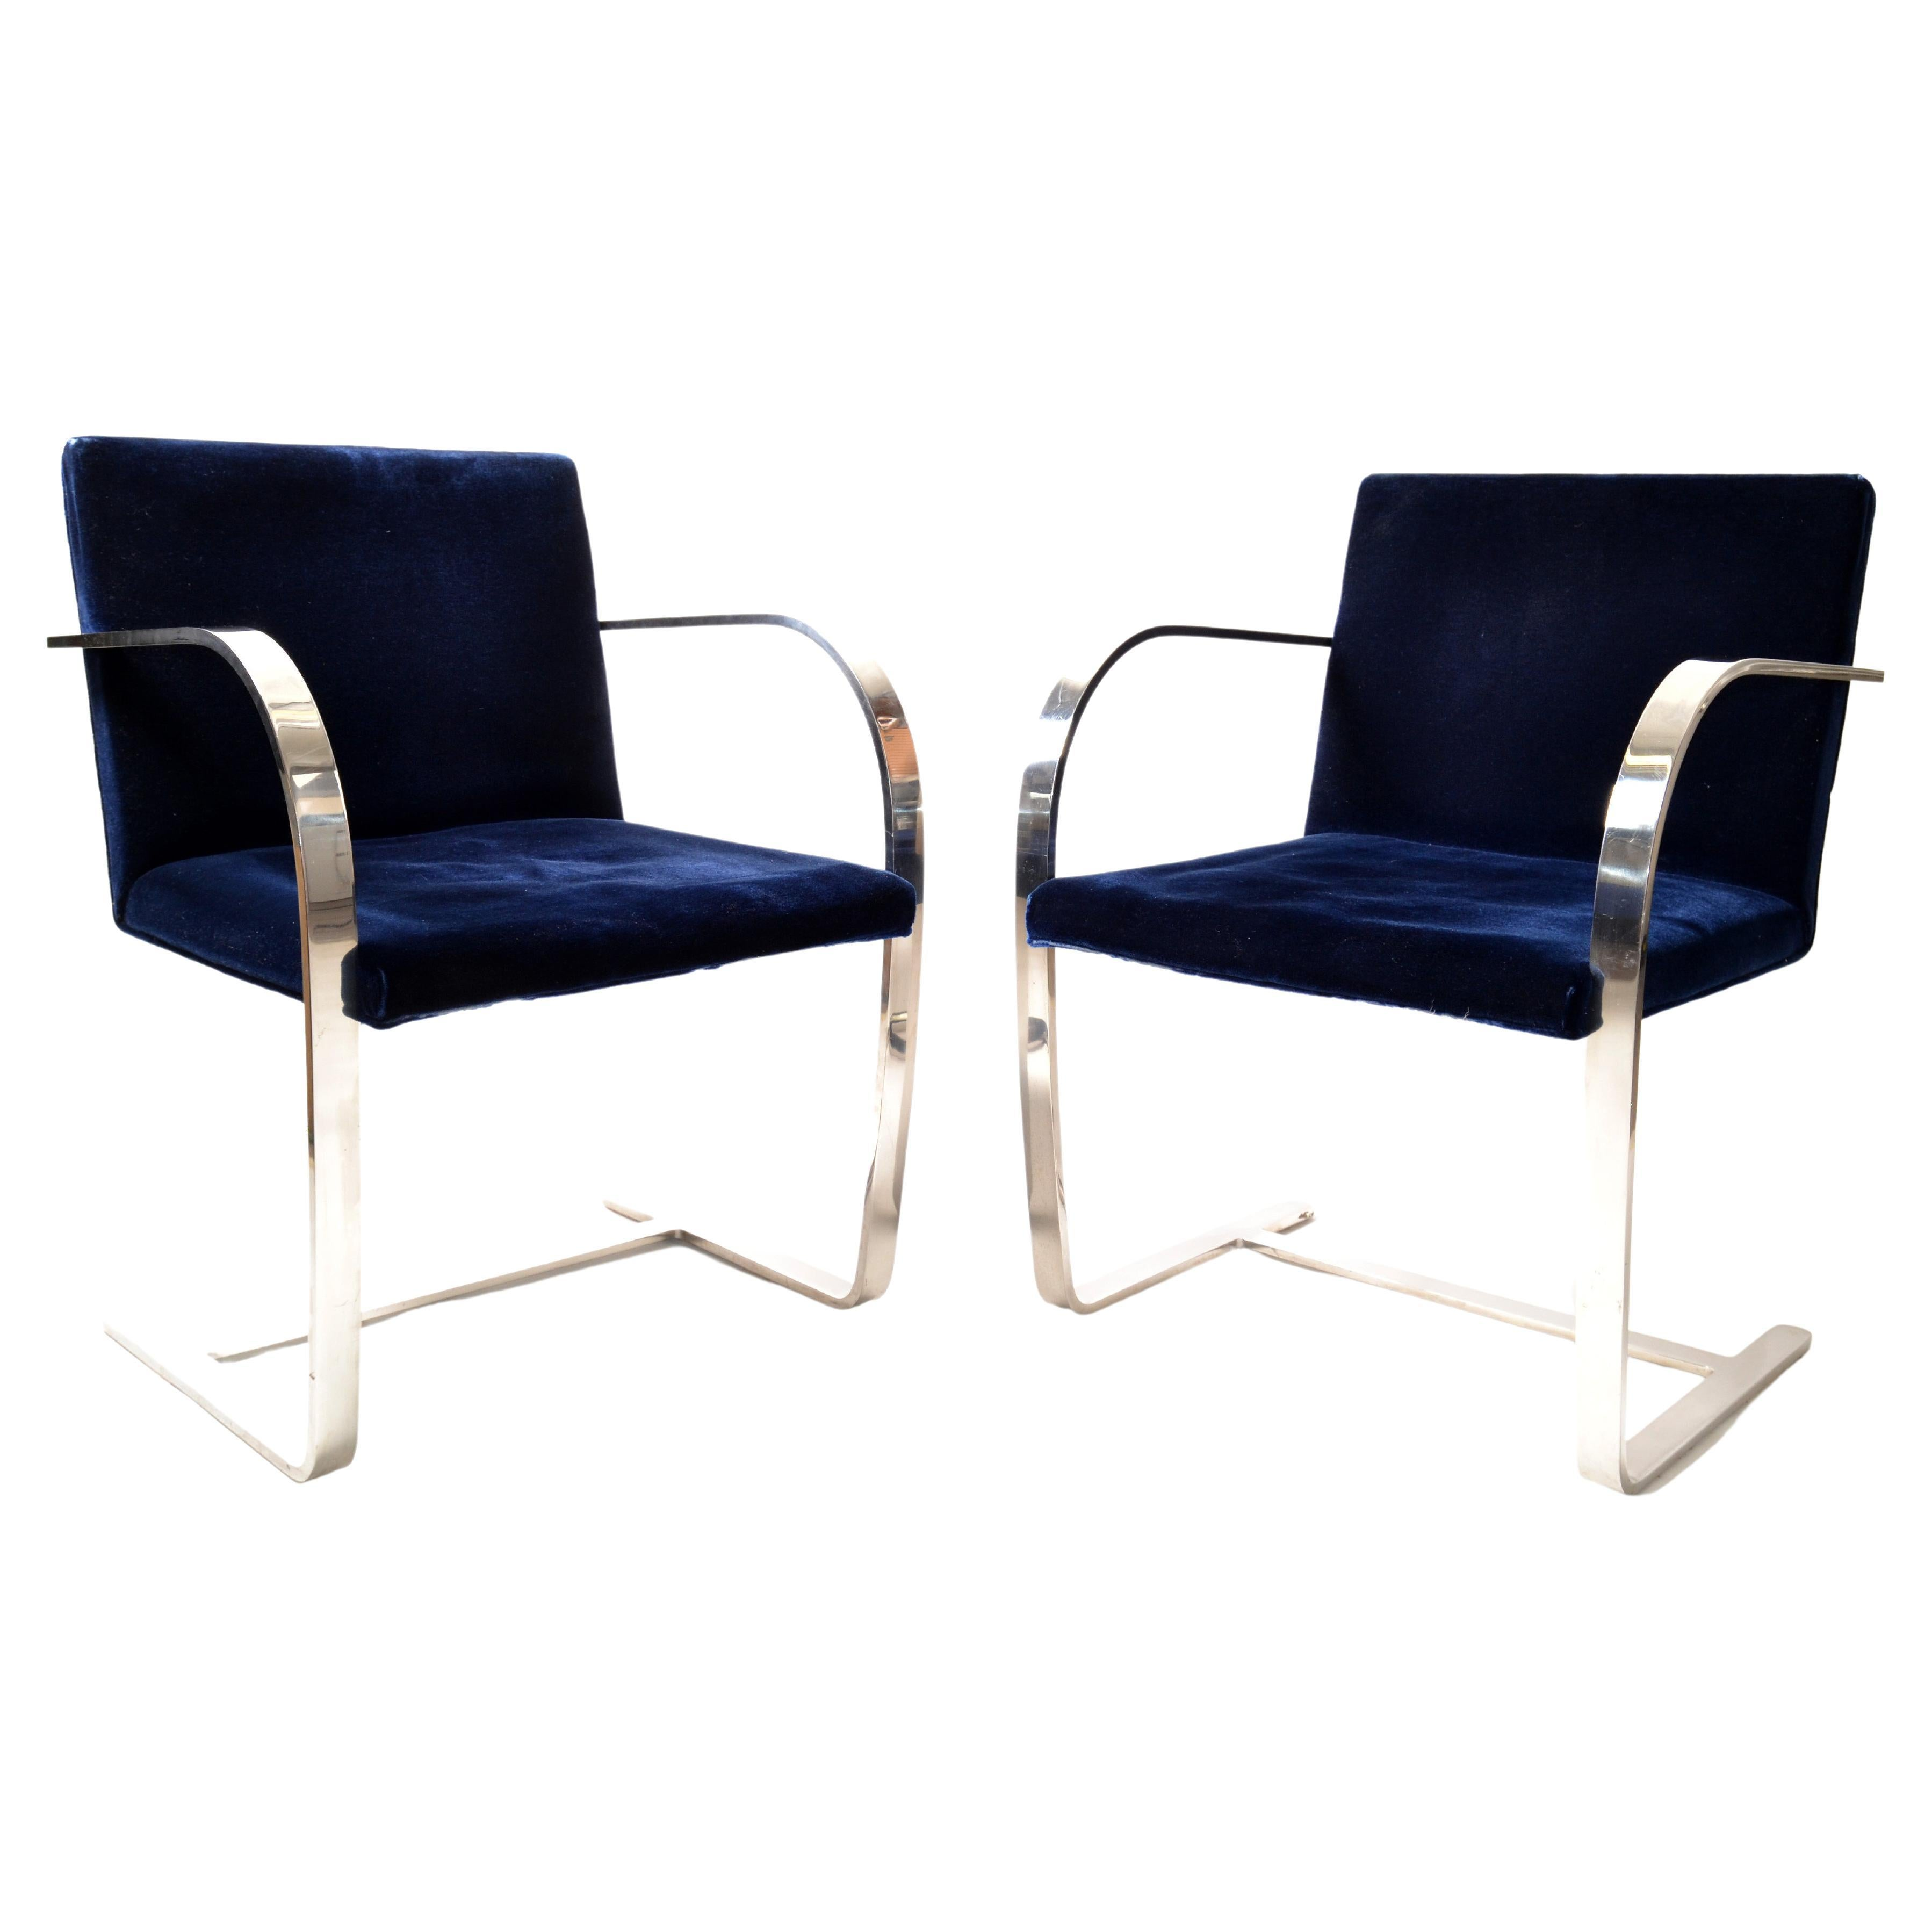 Mies Van Der Rohe For Knoll Stainless Steel Brno Chairs Blue Velvet 1977, Pair